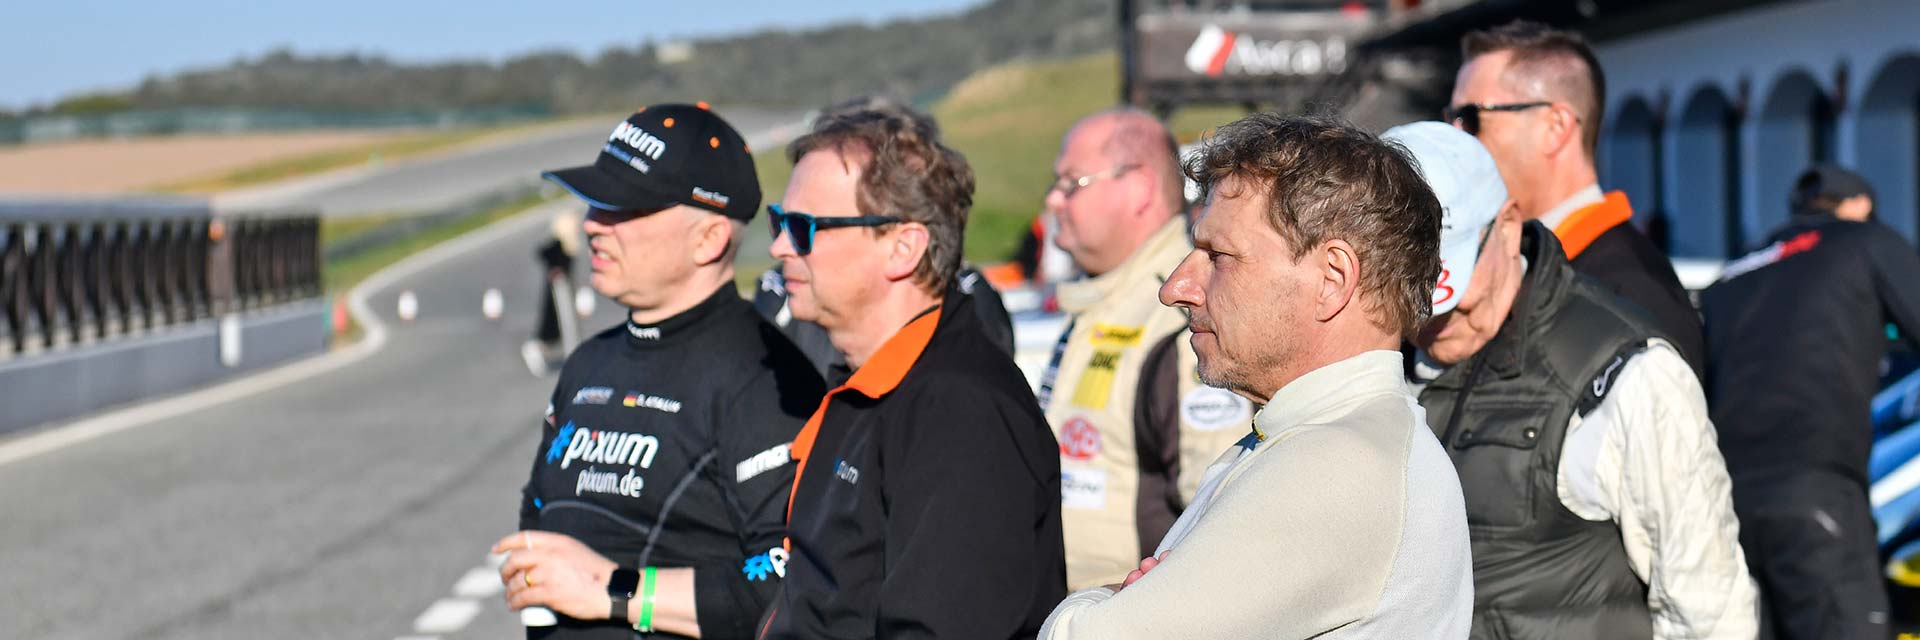 GEDLICH Racing - Business Events